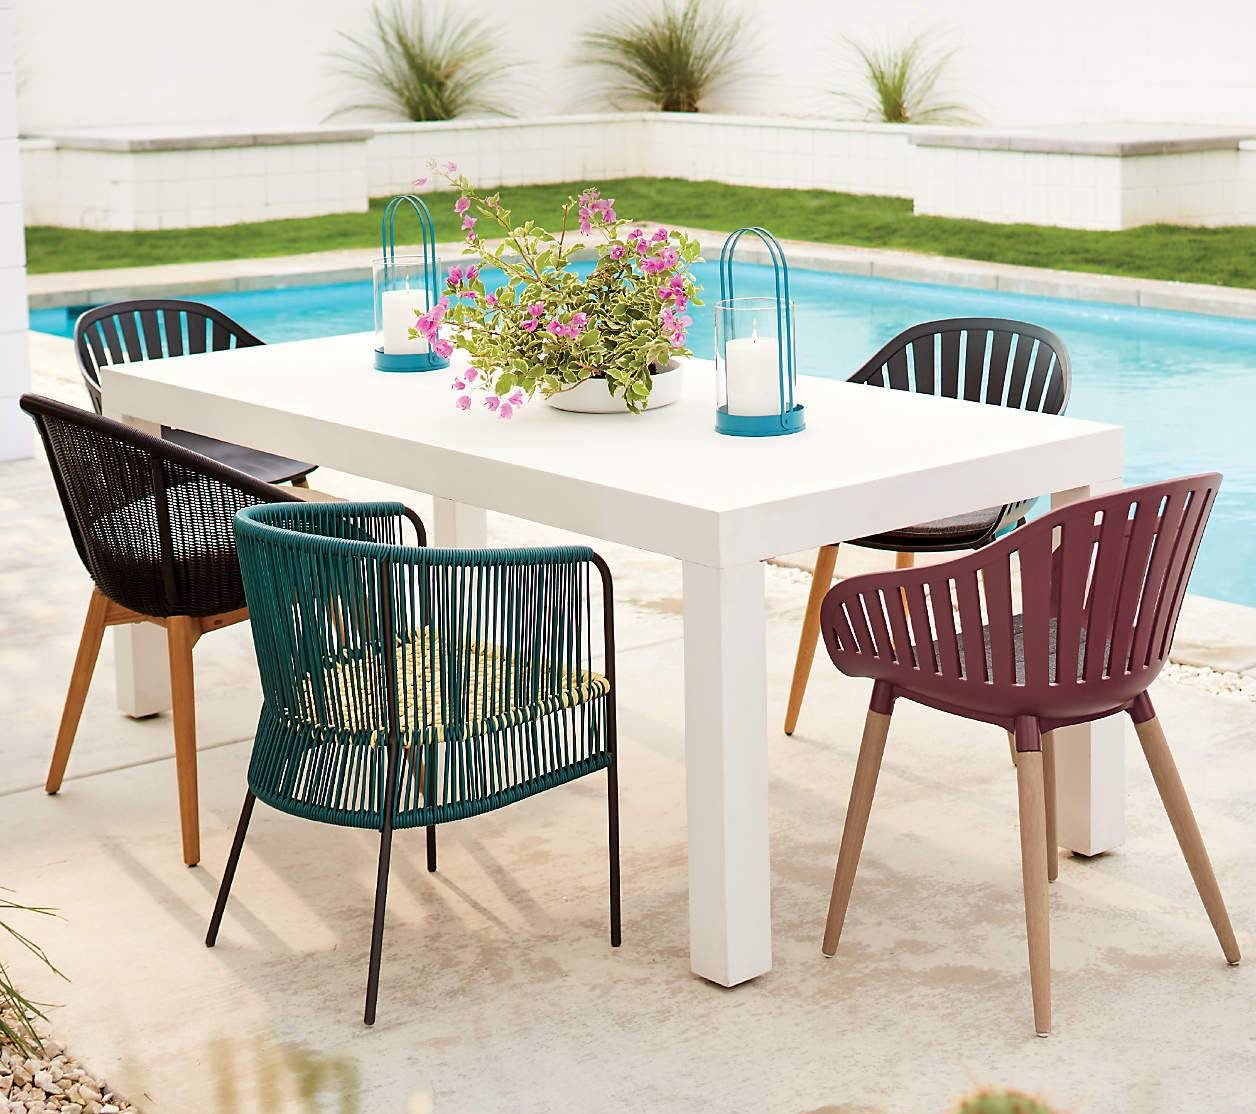 Modern Outdoor Patio Dining Chair Mid Century Chic Statement Chair White Table